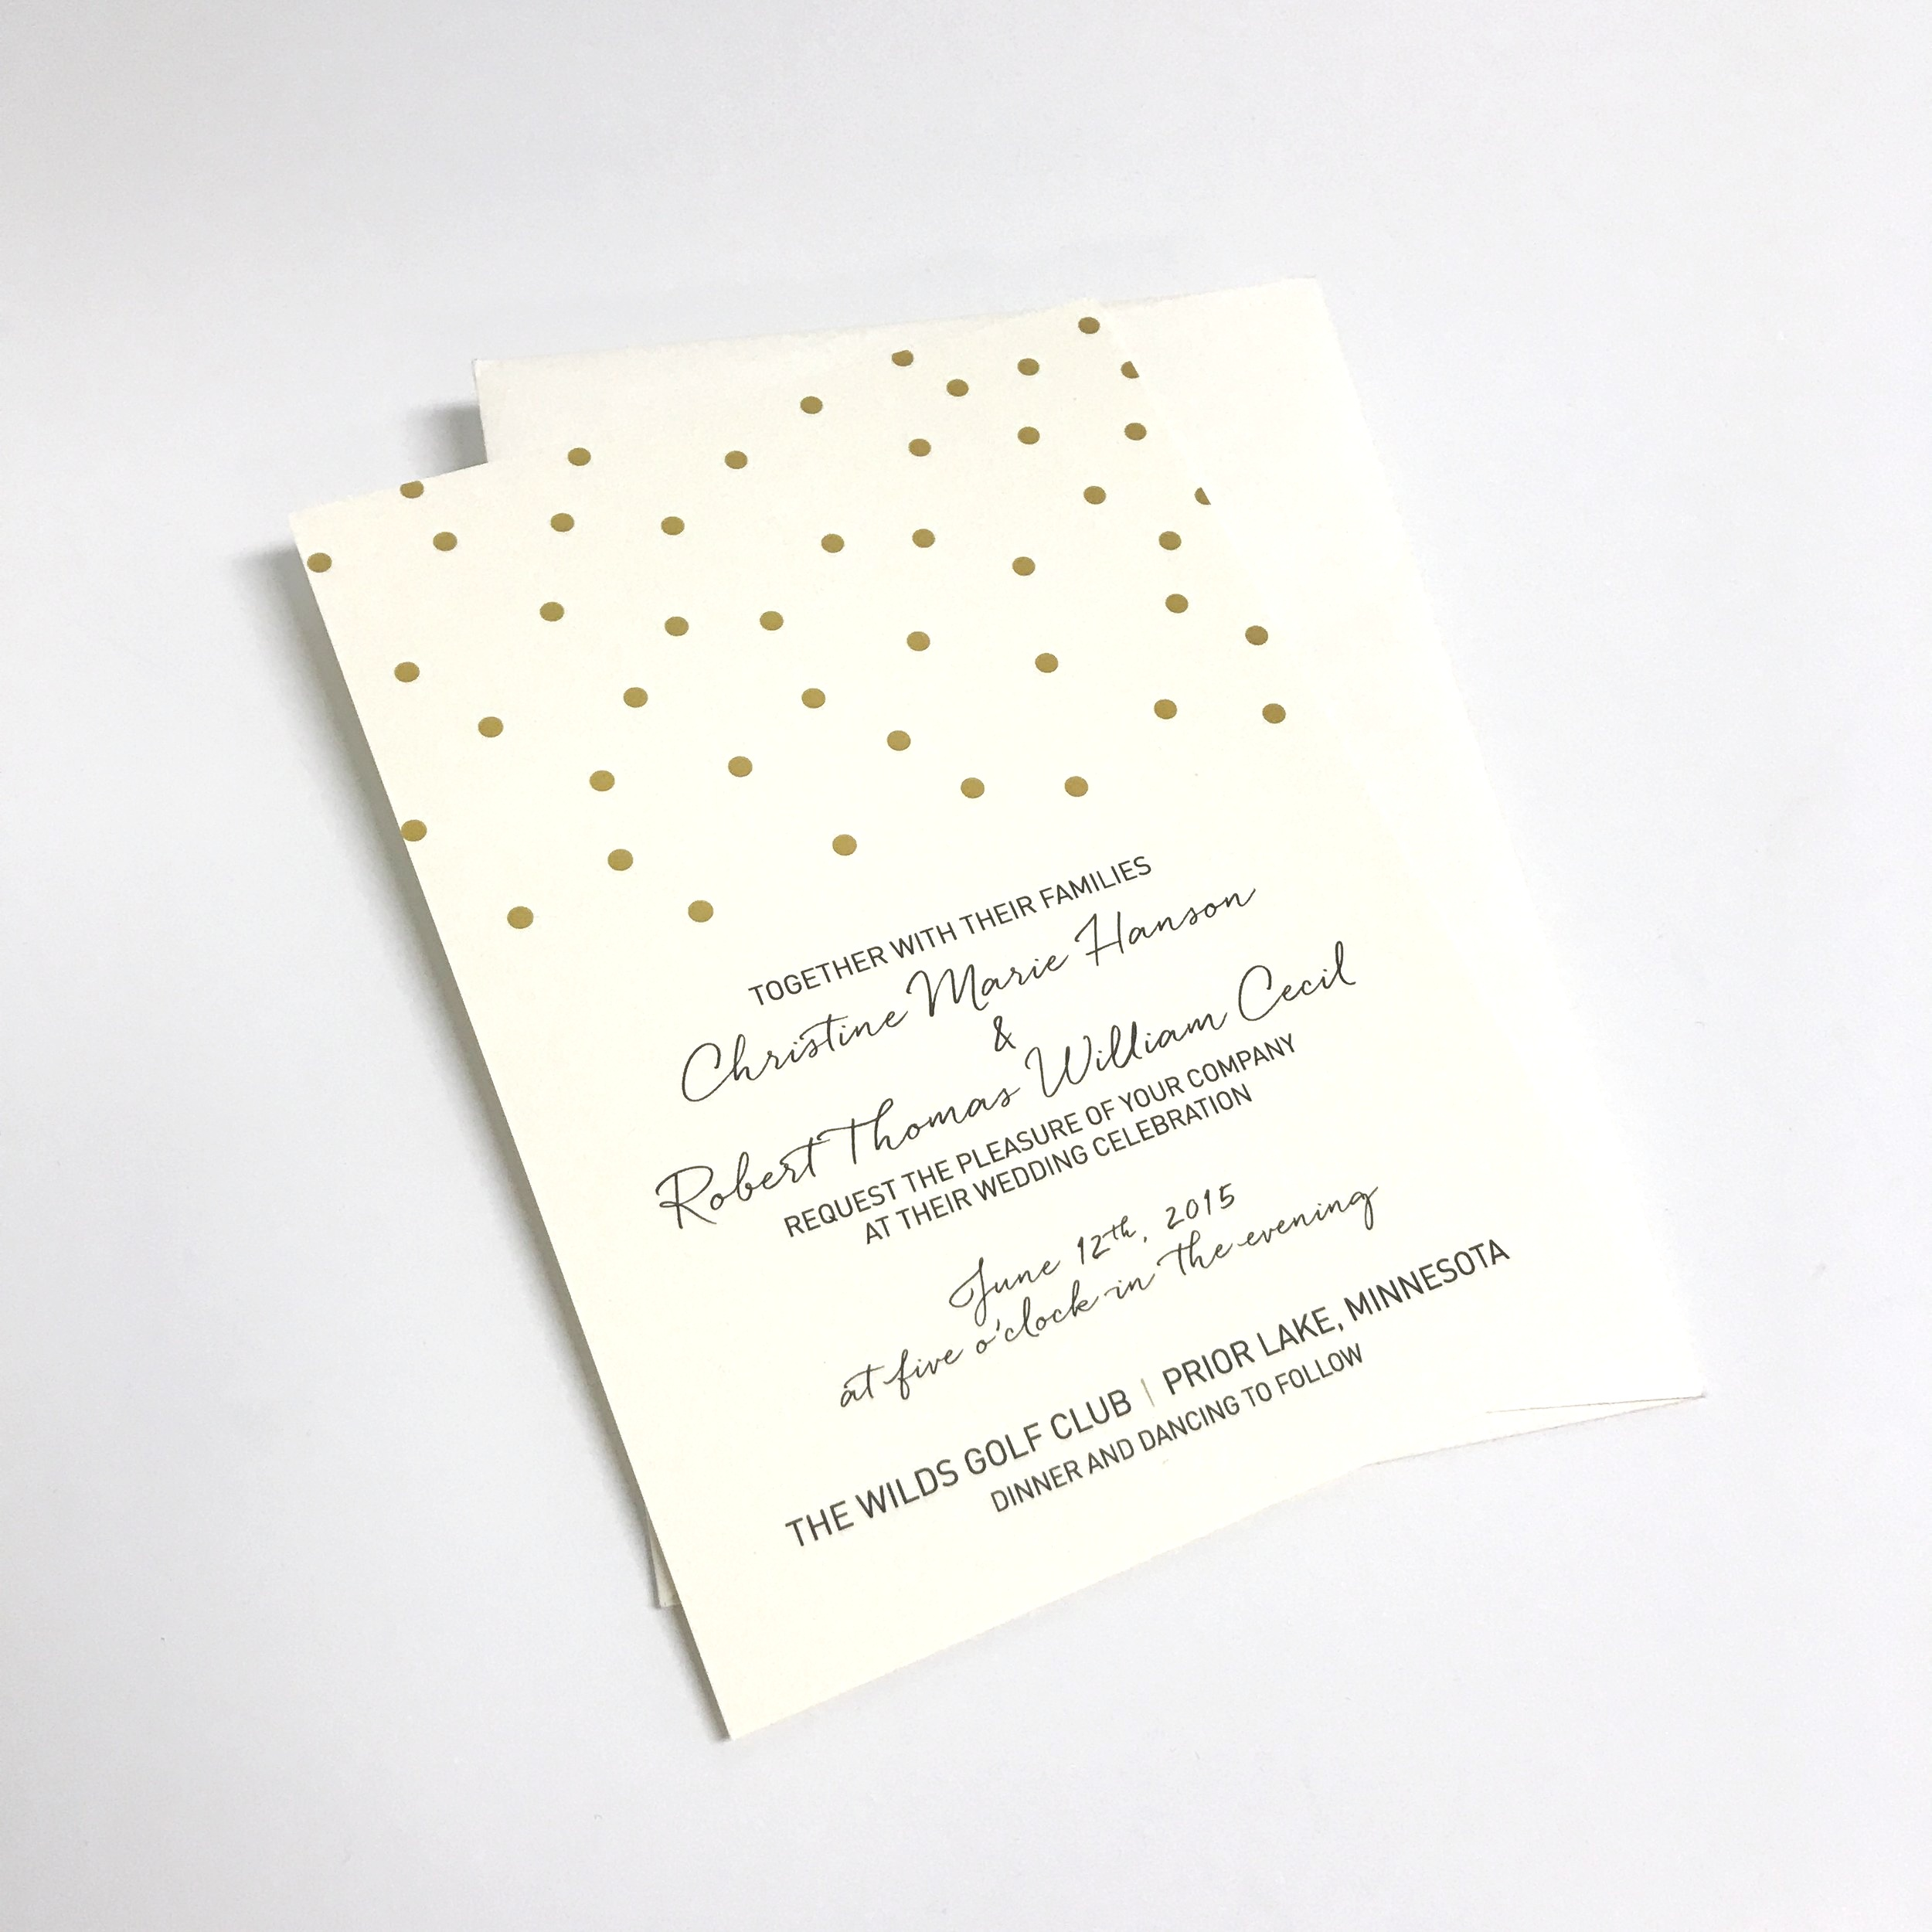 High quality wedding invitation with foil printed in Minnesota